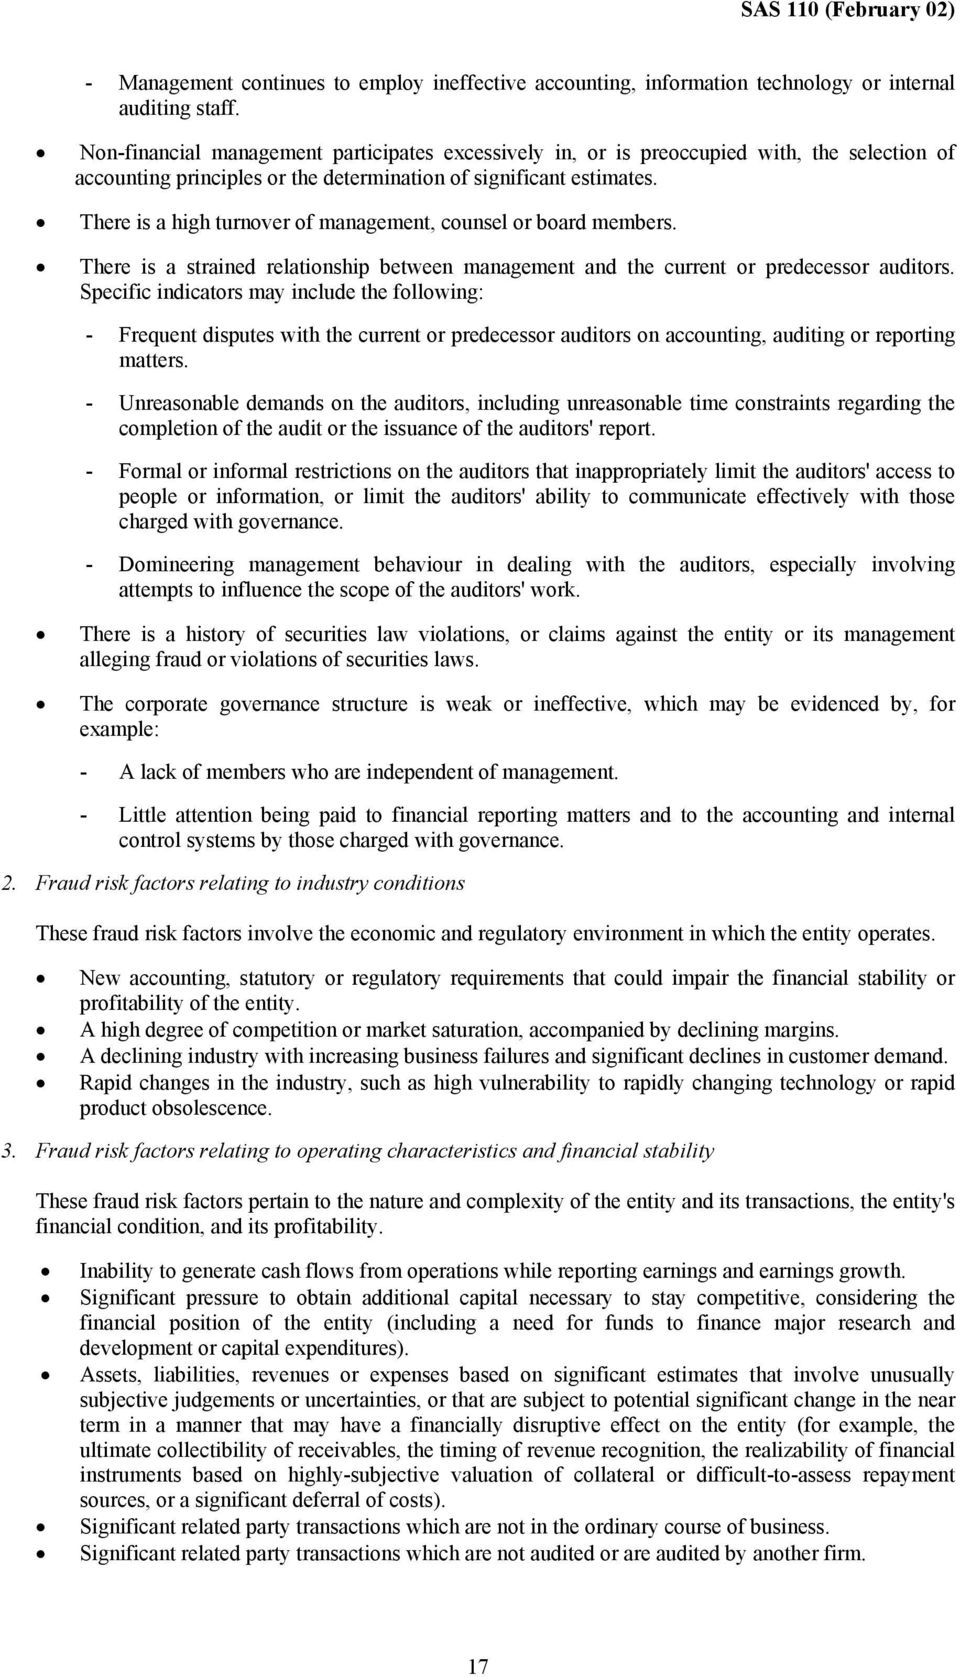 Statement Of Auditing Standards 110 The Auditors Responsibility To Consider Fraud And Error In An Audit Of Financial Statements Pdf Free Download